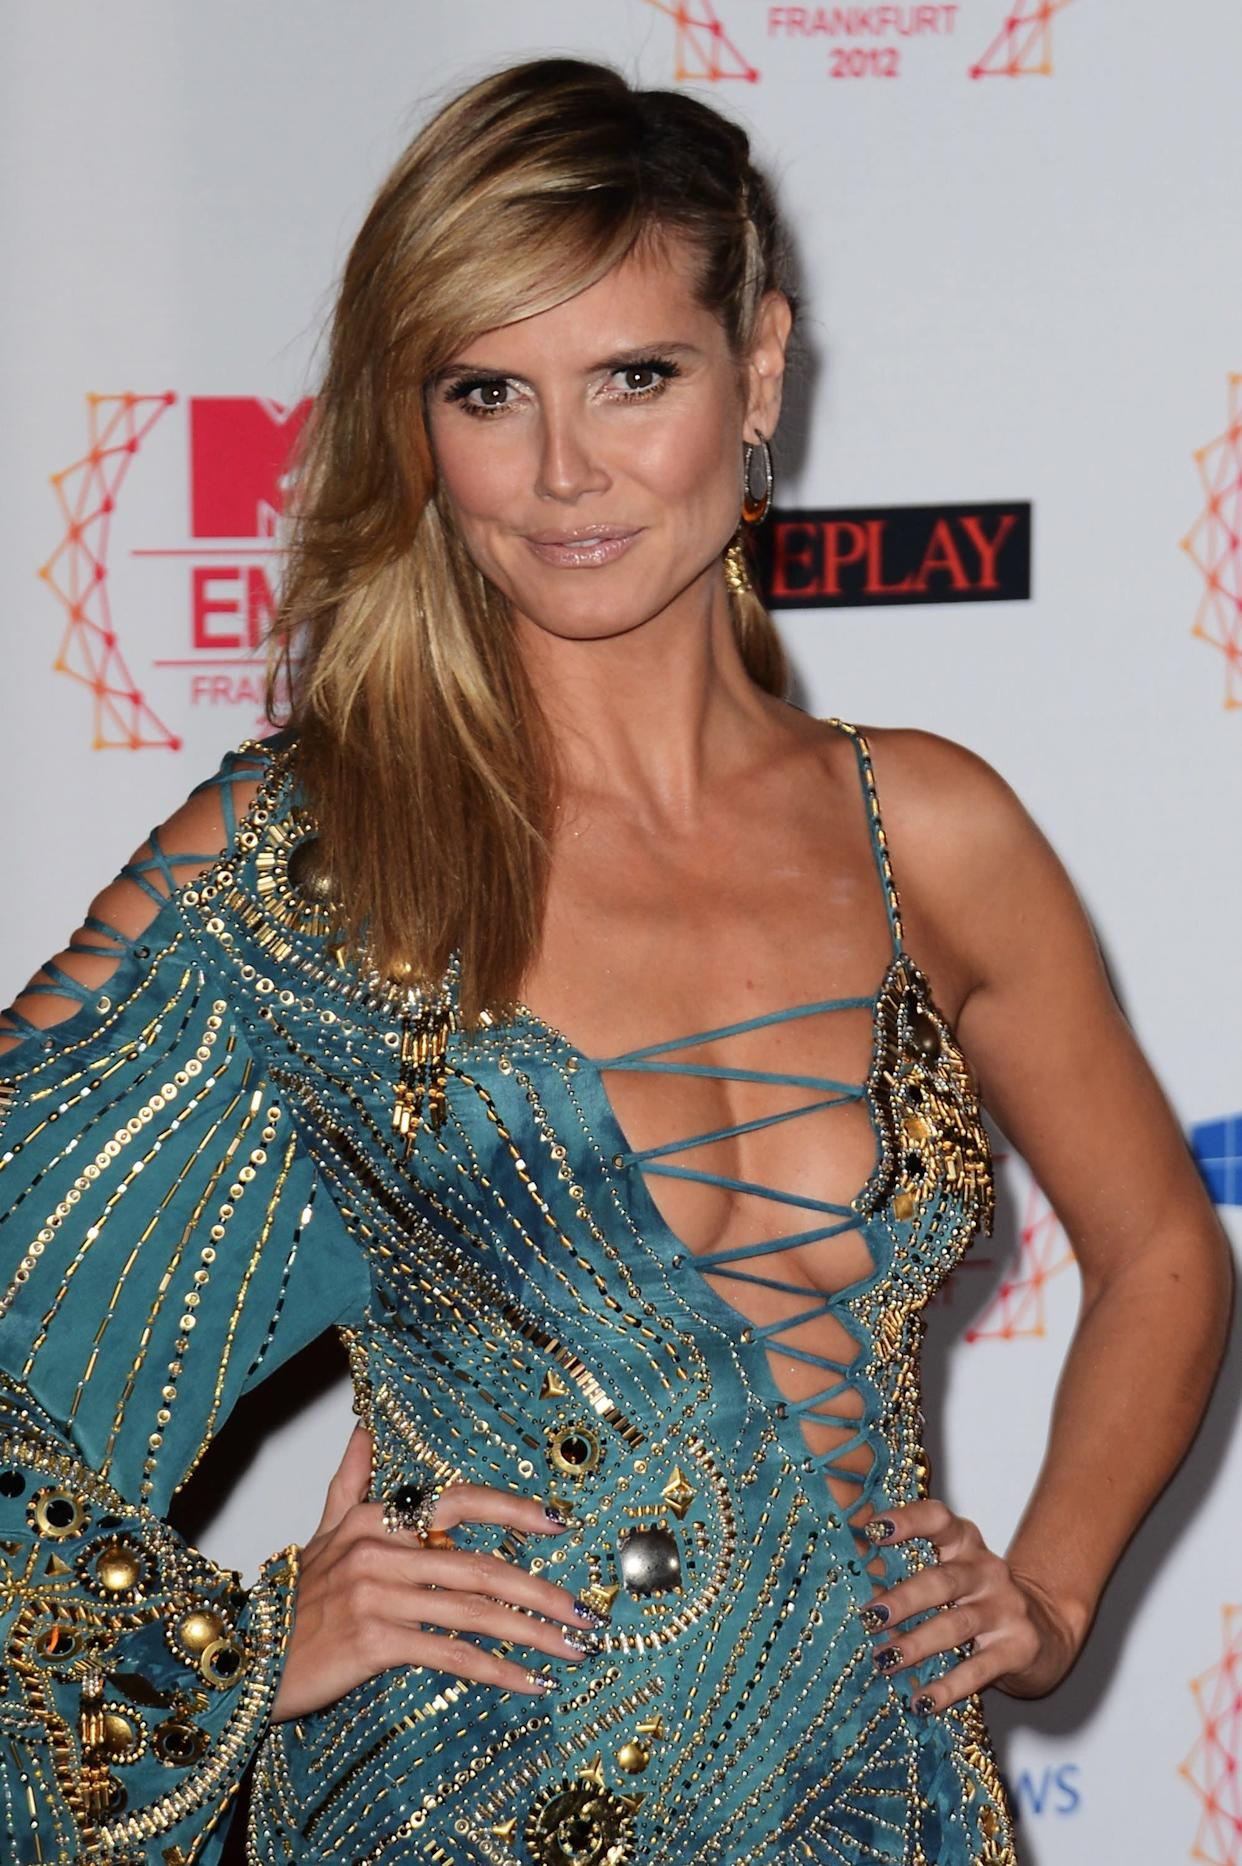 """""""Some people are more experimental in bed and others are more boring. If you are wild and crazy, bring it on so the other person is well aware that you have little devil horns that come out every once in a while,"""" <a href=""""http://www.marieclaire.com/celebrity-lifestyle/celebrities/heidi-klum-feature?click=pp"""" rel=""""nofollow noopener"""" target=""""_blank"""" data-ylk=""""slk:she confessed to Marie Claire"""" class=""""link rapid-noclick-resp"""">she confessed to Marie Claire</a>, adding, """"It's good to make an effort to dress up sometimes, to do things outside of the norm."""""""